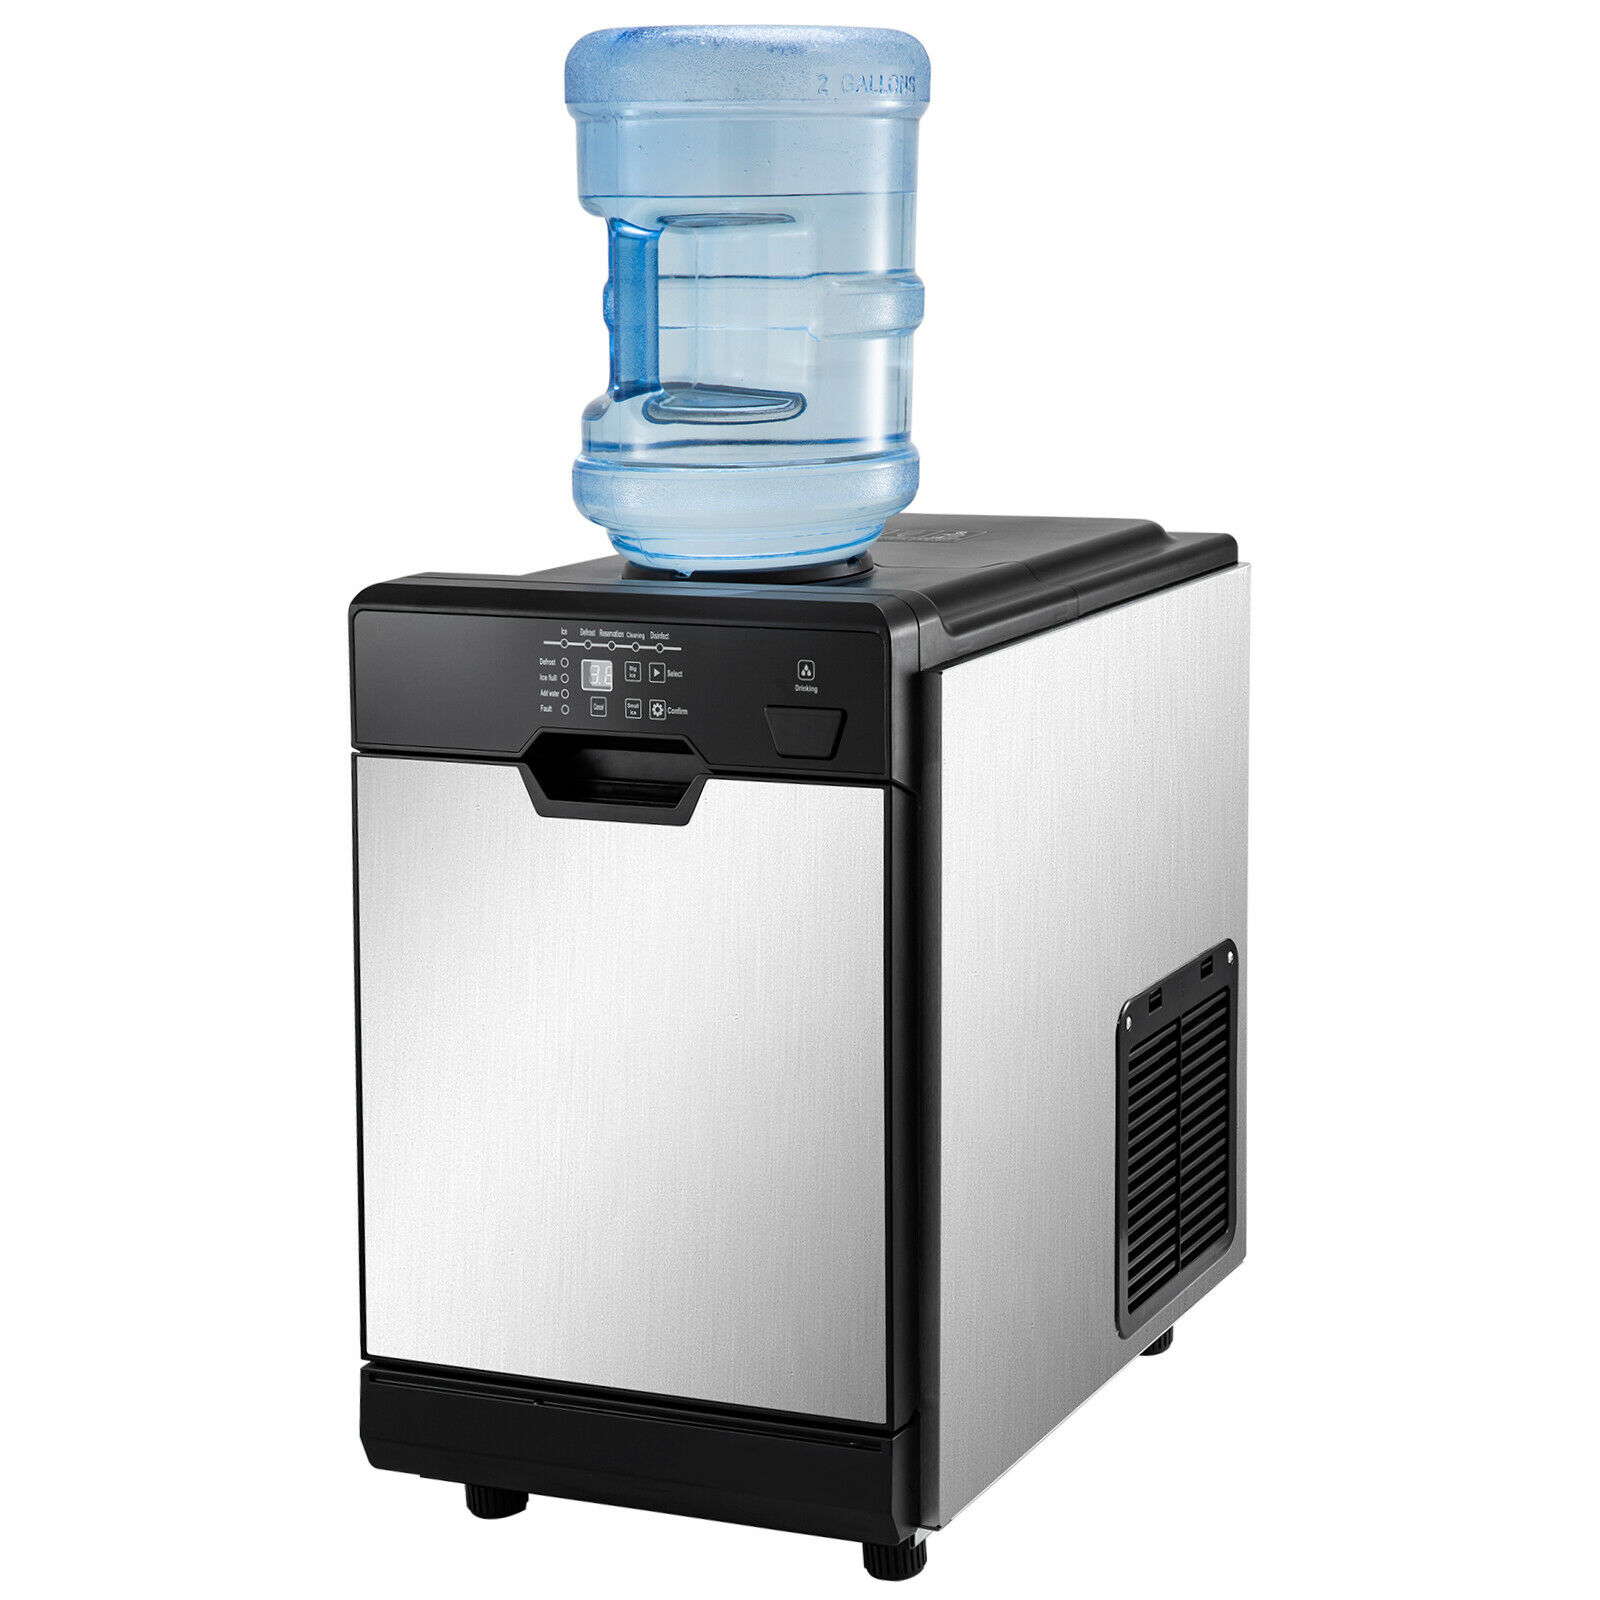 VEVOR 2 in 1 Commercial Ice Maker with Water Dispenser 78LBS in 24 Hrs 14LBS Cubes Perfect for Office Snack Bar